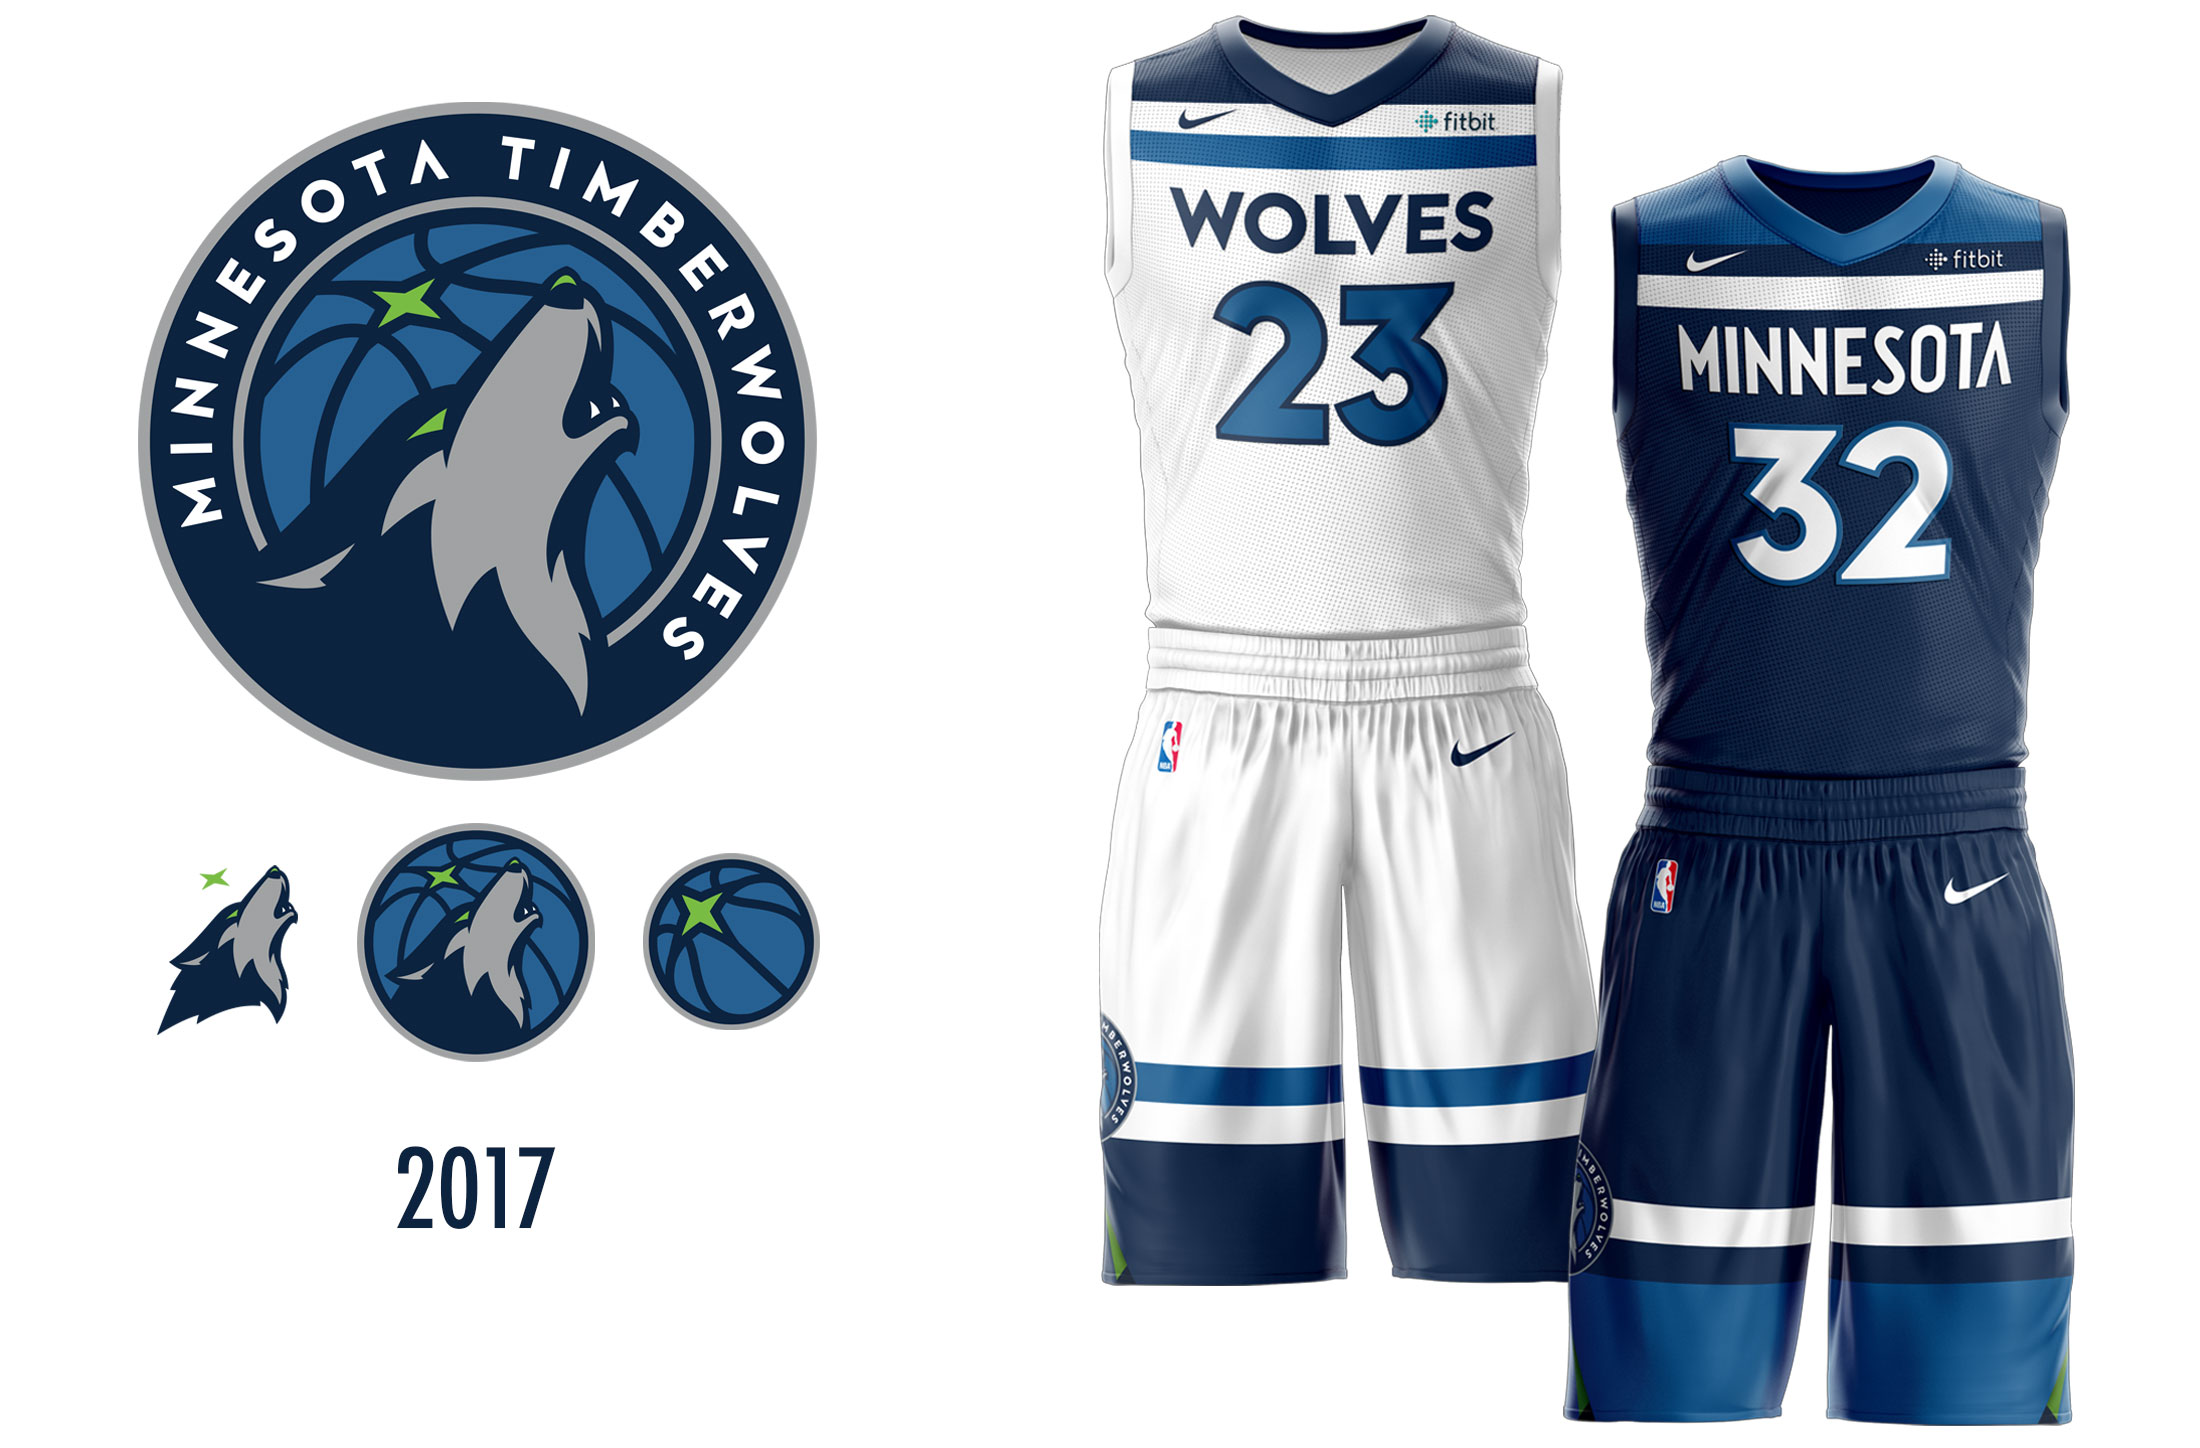 new jersey towns map with Look History Timberwolves Jerseys on Newark 1 together with High Resolution Maps likewise File WVUndergroundRR together with Missouri Highway Map likewise NC Western Section.